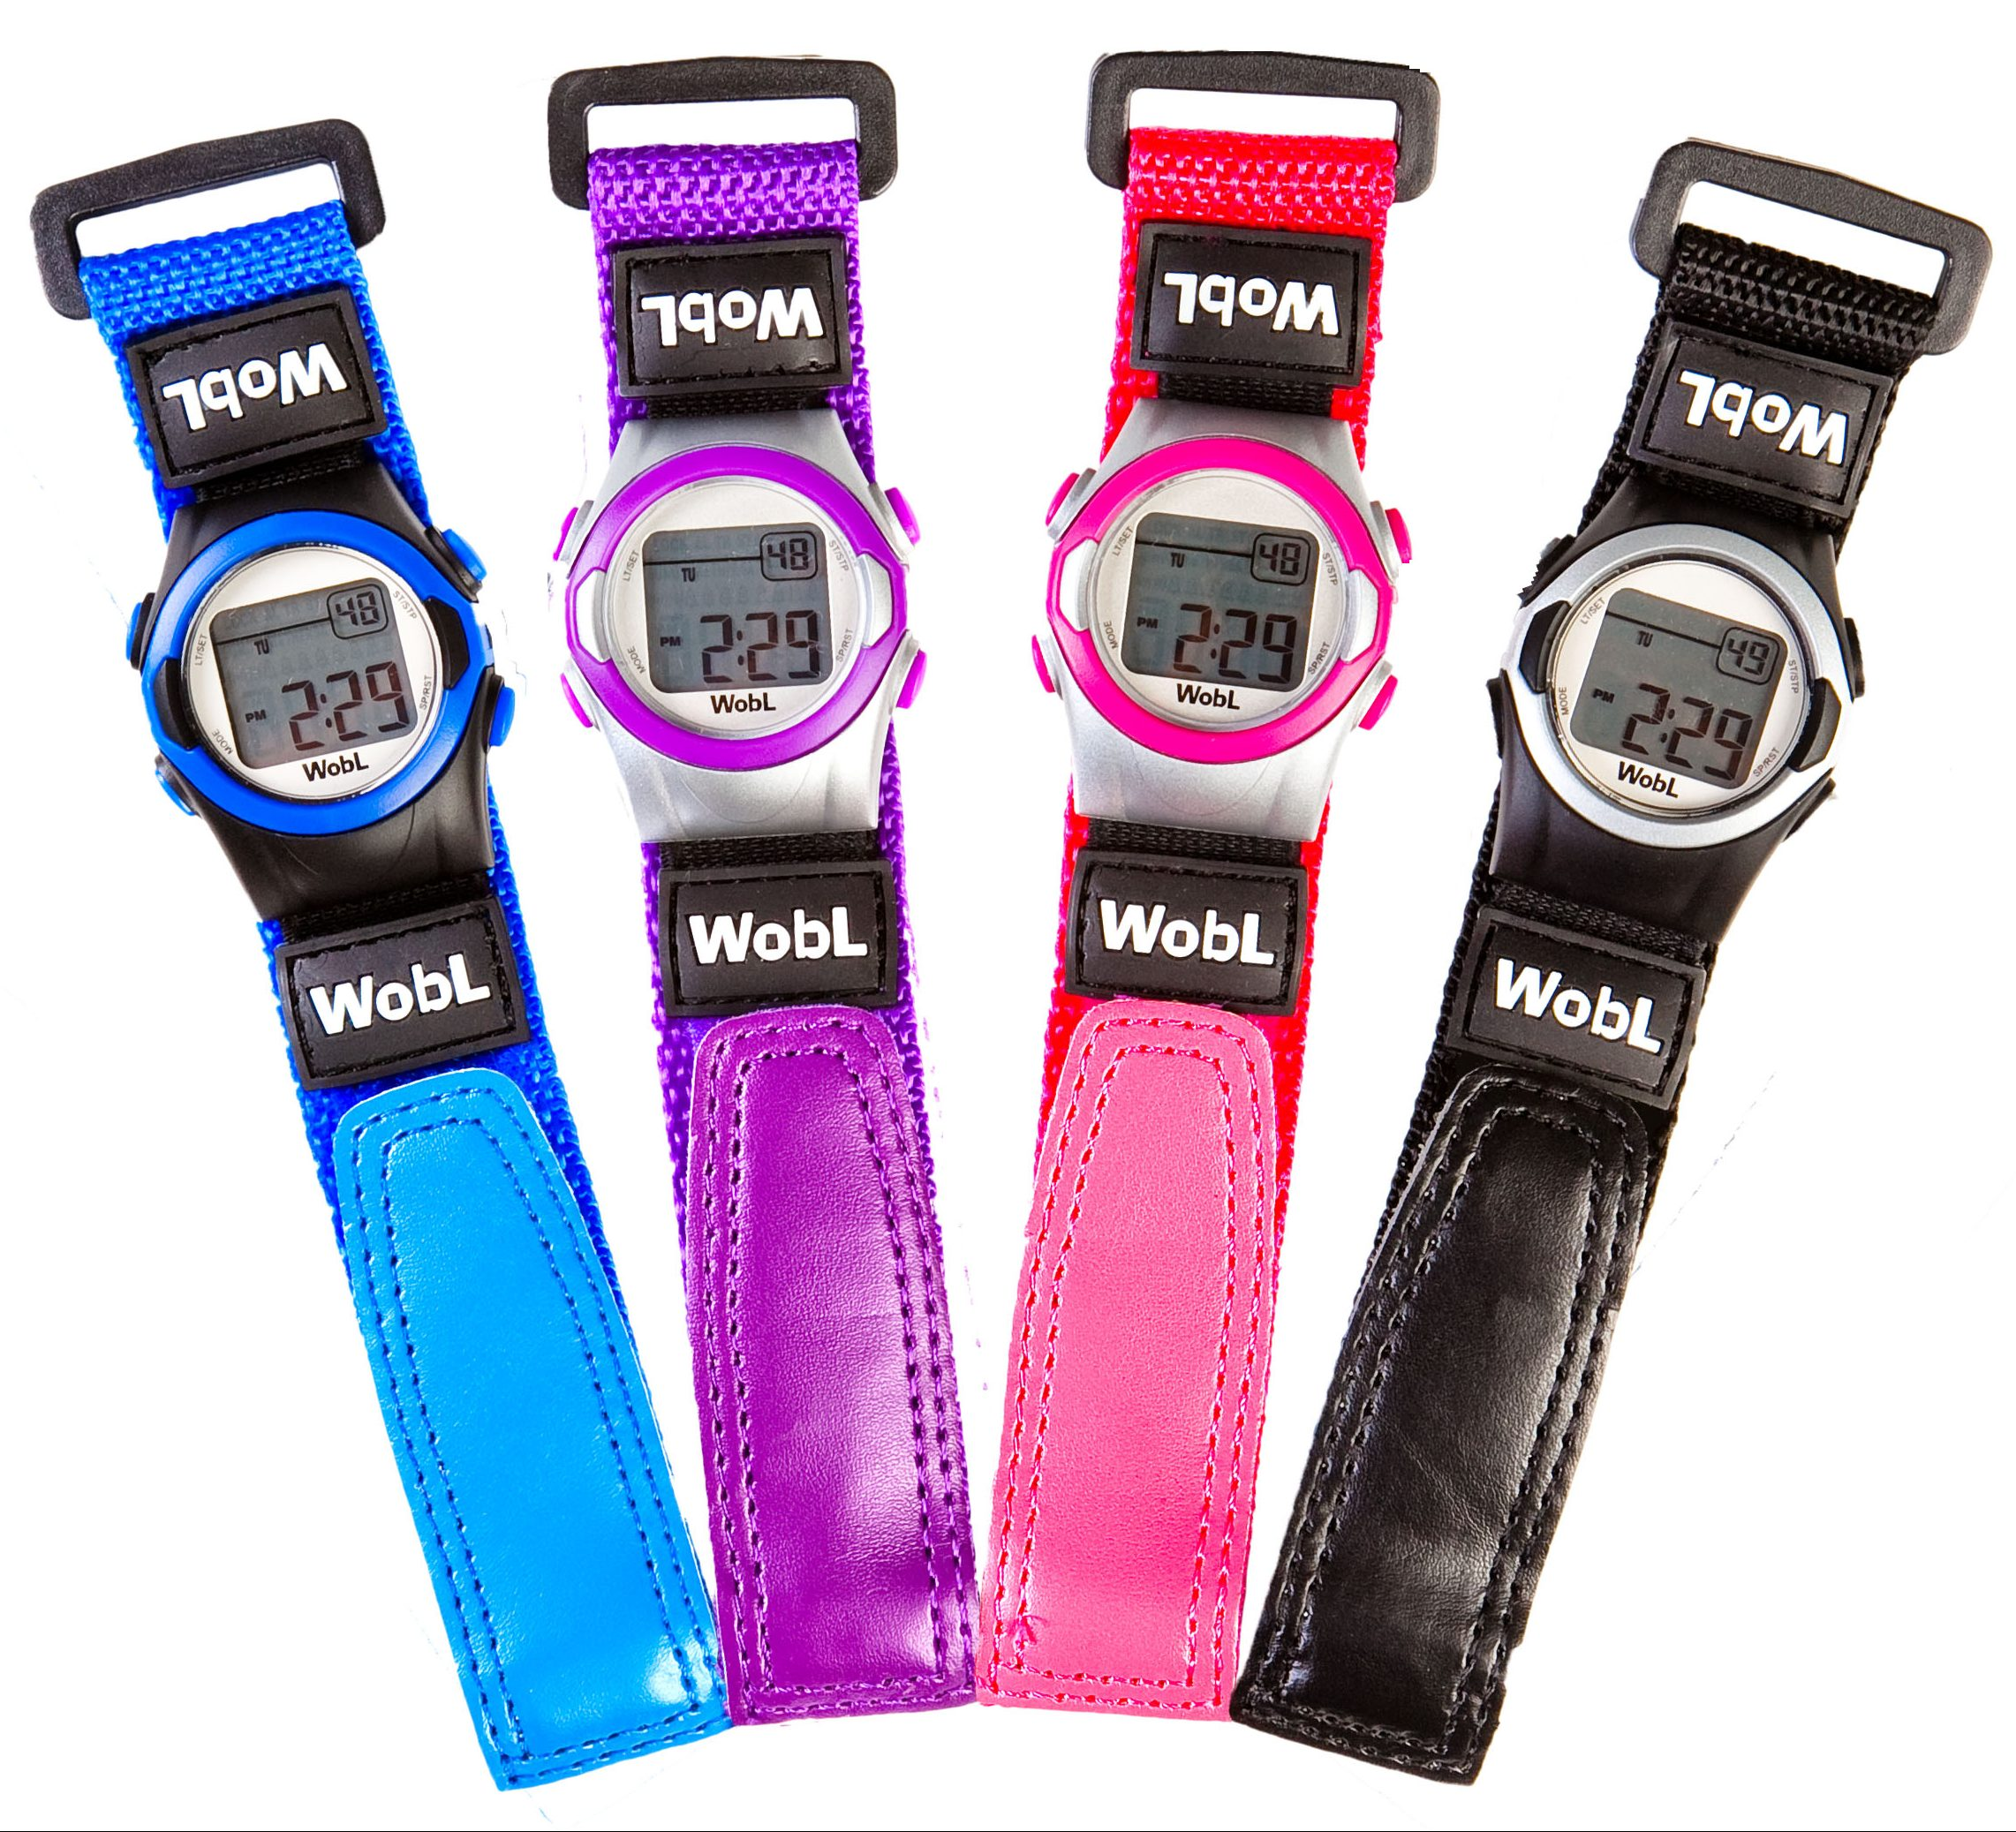 Potty Training Watch That Vibrates Amp Alarms Wobl Watch